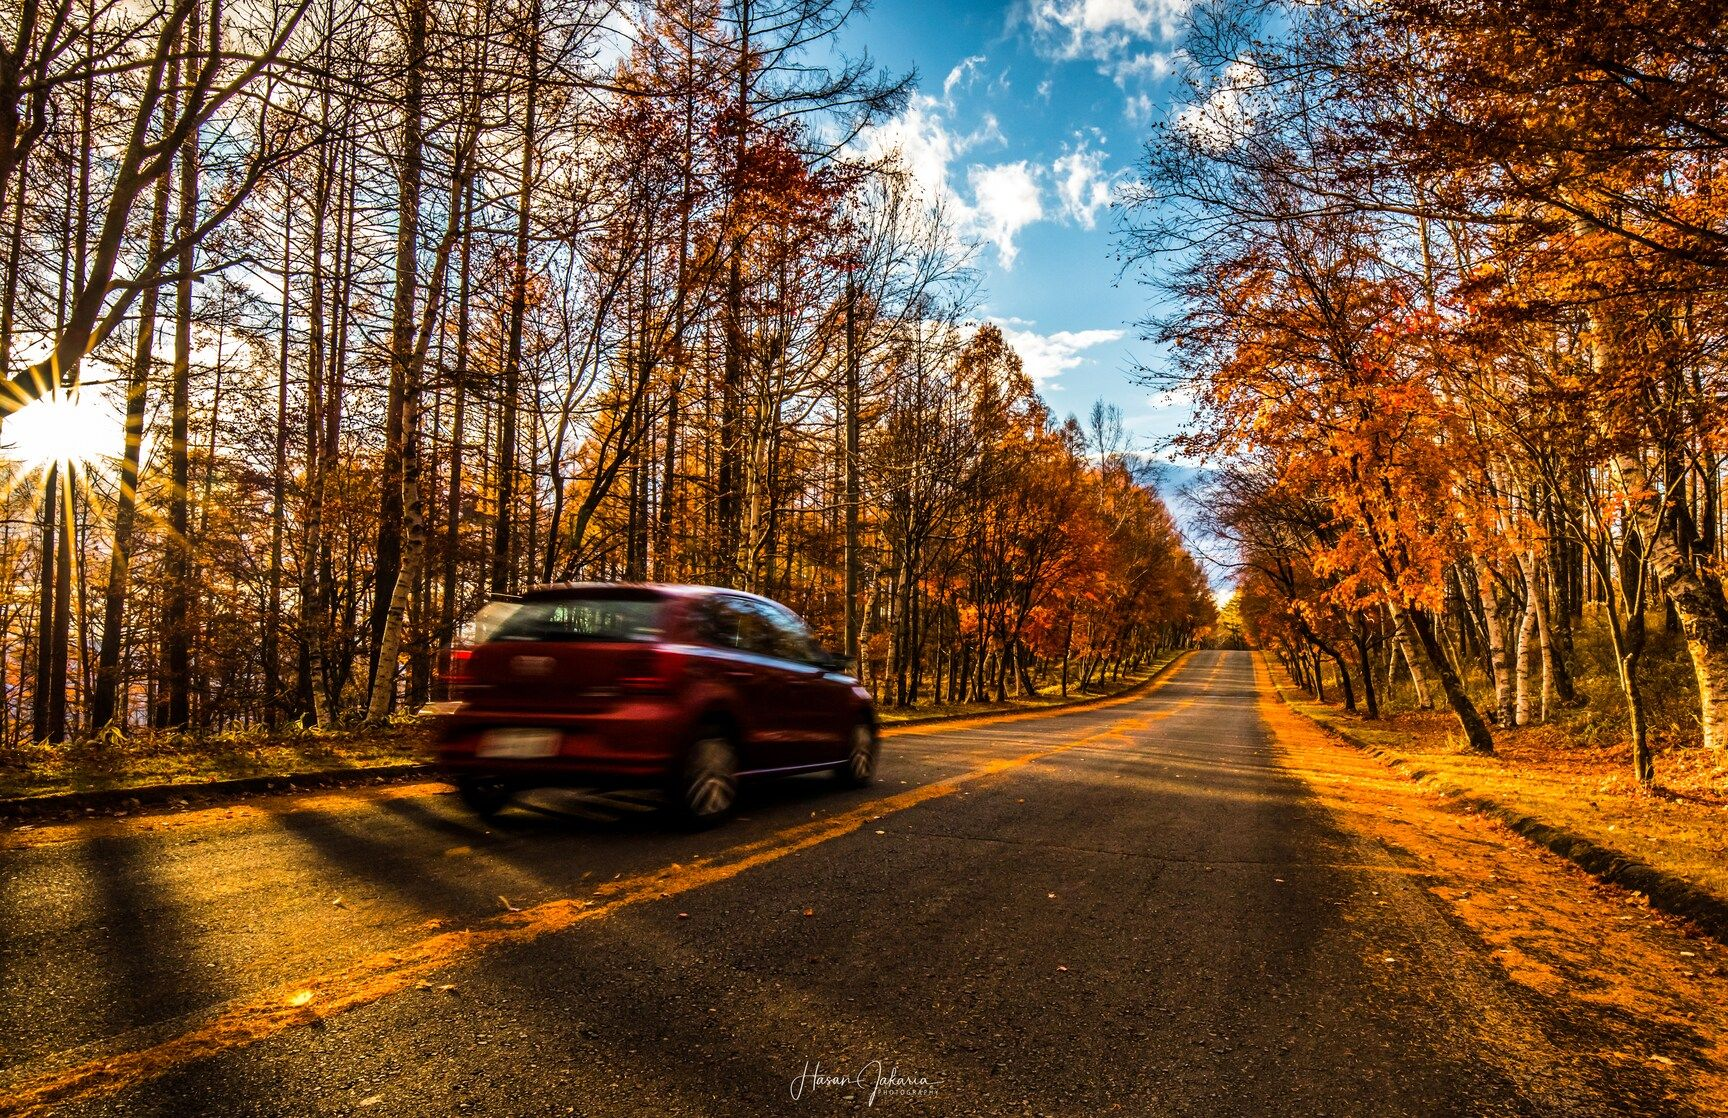 This photo taken by Hasan Jakaria . . . . . #PASHADELIC #絶景delic . #日本の絶景 #長野 #nagano #road #autumnleaves . . #canon_photos #5dmarkiv #igers #instagood #photooftheday #photography #nature #natureshots #nature_shooters #naturephotography #landscape #beautifulview #Japan_daytime_view #japan #japantravel #japantrip #instajapan #ig_japan #photo_jpn #photo_travelers